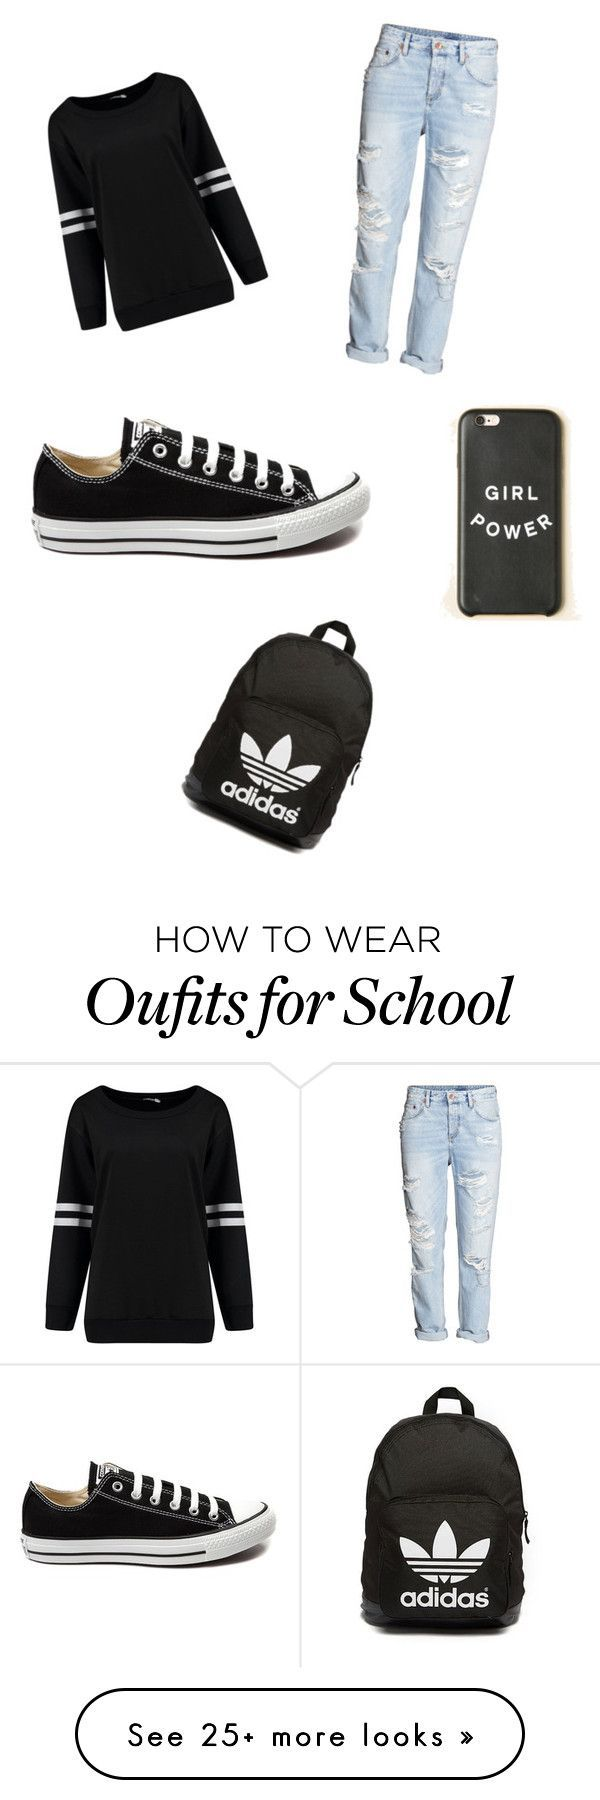 """school outfit"" by zasad on Polyvore featuring H&M, Converse, adidas Originals, women's clothing, women, female, woman, misses and juniors"